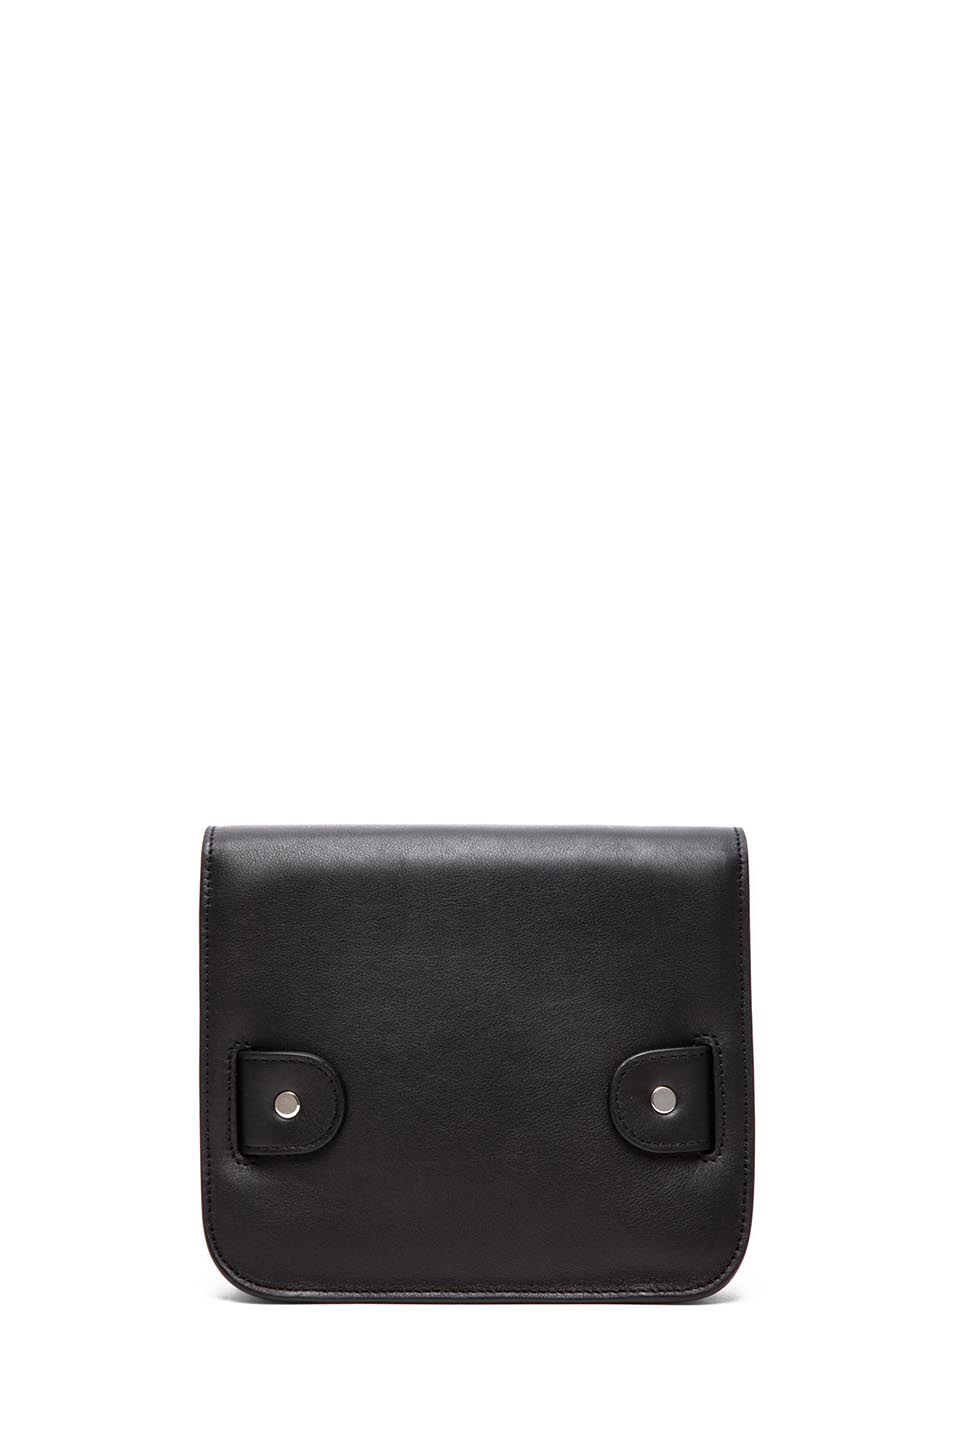 Proenza Schouler|Tiny PS11 Smooth Leather Shoulder Bag in Black